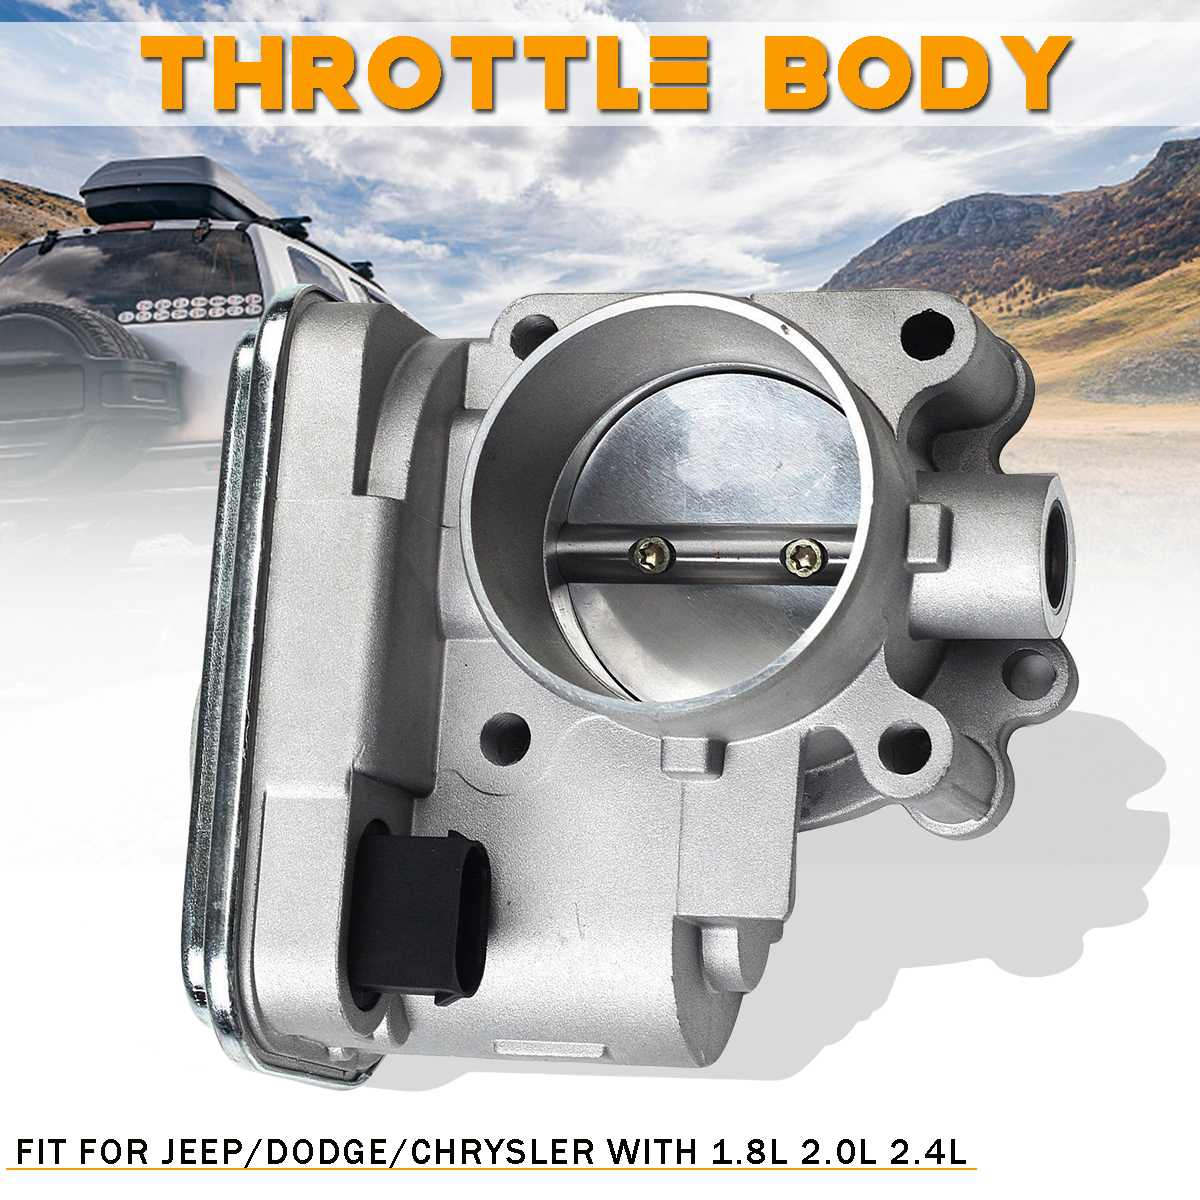 Complete Throttle Body For Jeep/Chrysler/Dodge/Compass/Caliber 4884551AA 04891735AC Auto Replacement Parts 1.8L 2.0L 2.4L